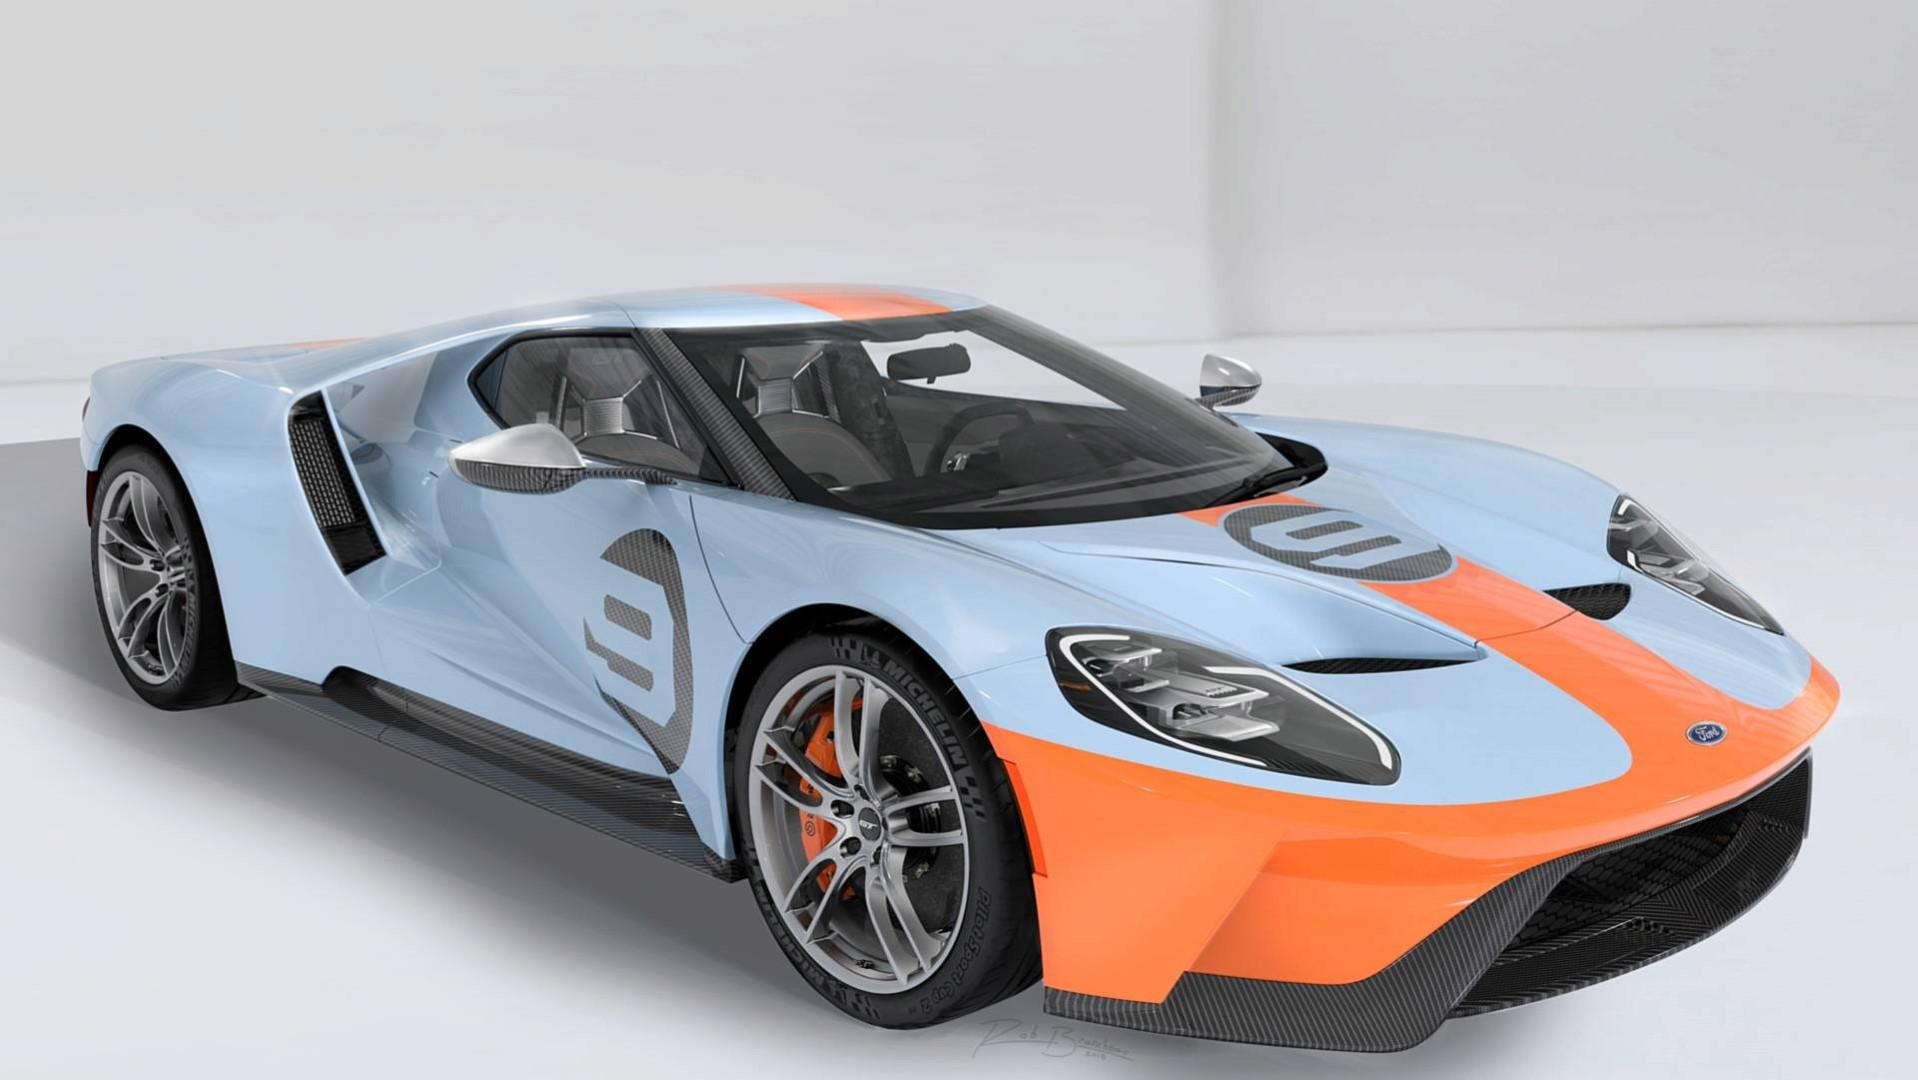 ford-devoile-une-livree-specifique-de-sa-gt-ford-gt-heritage-edition-gulf-862-1.jpg